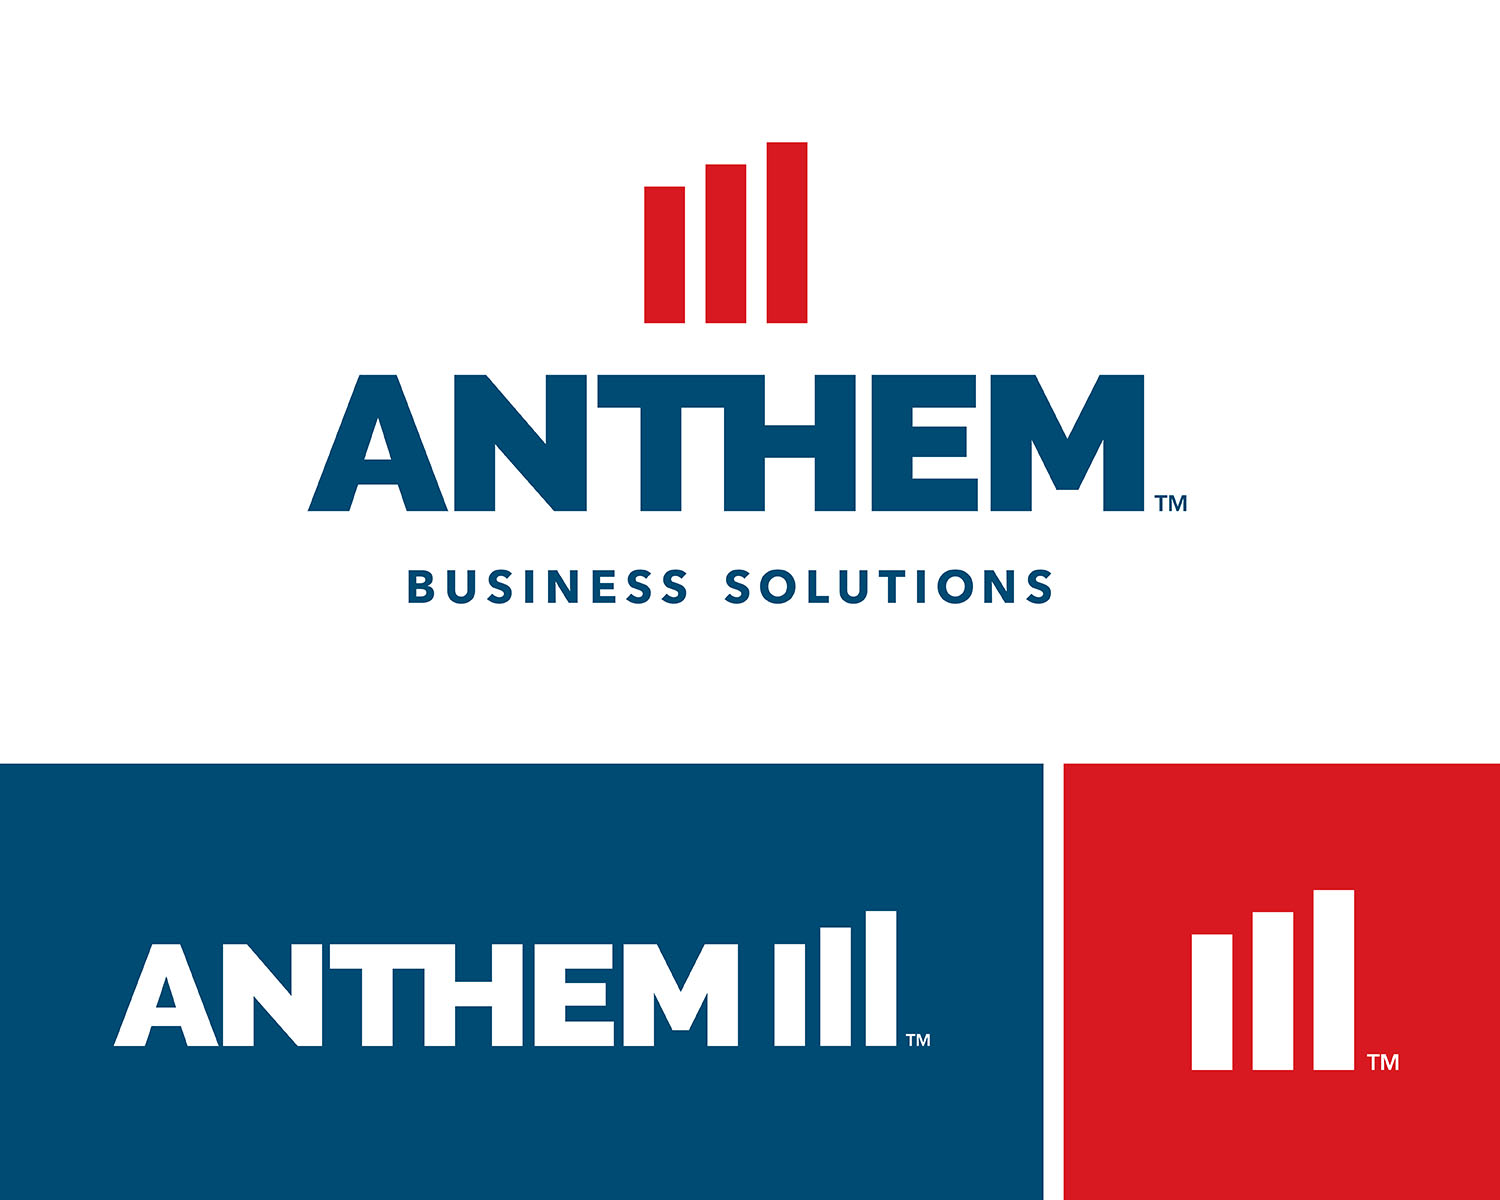 Anthem Business Solutions Logos